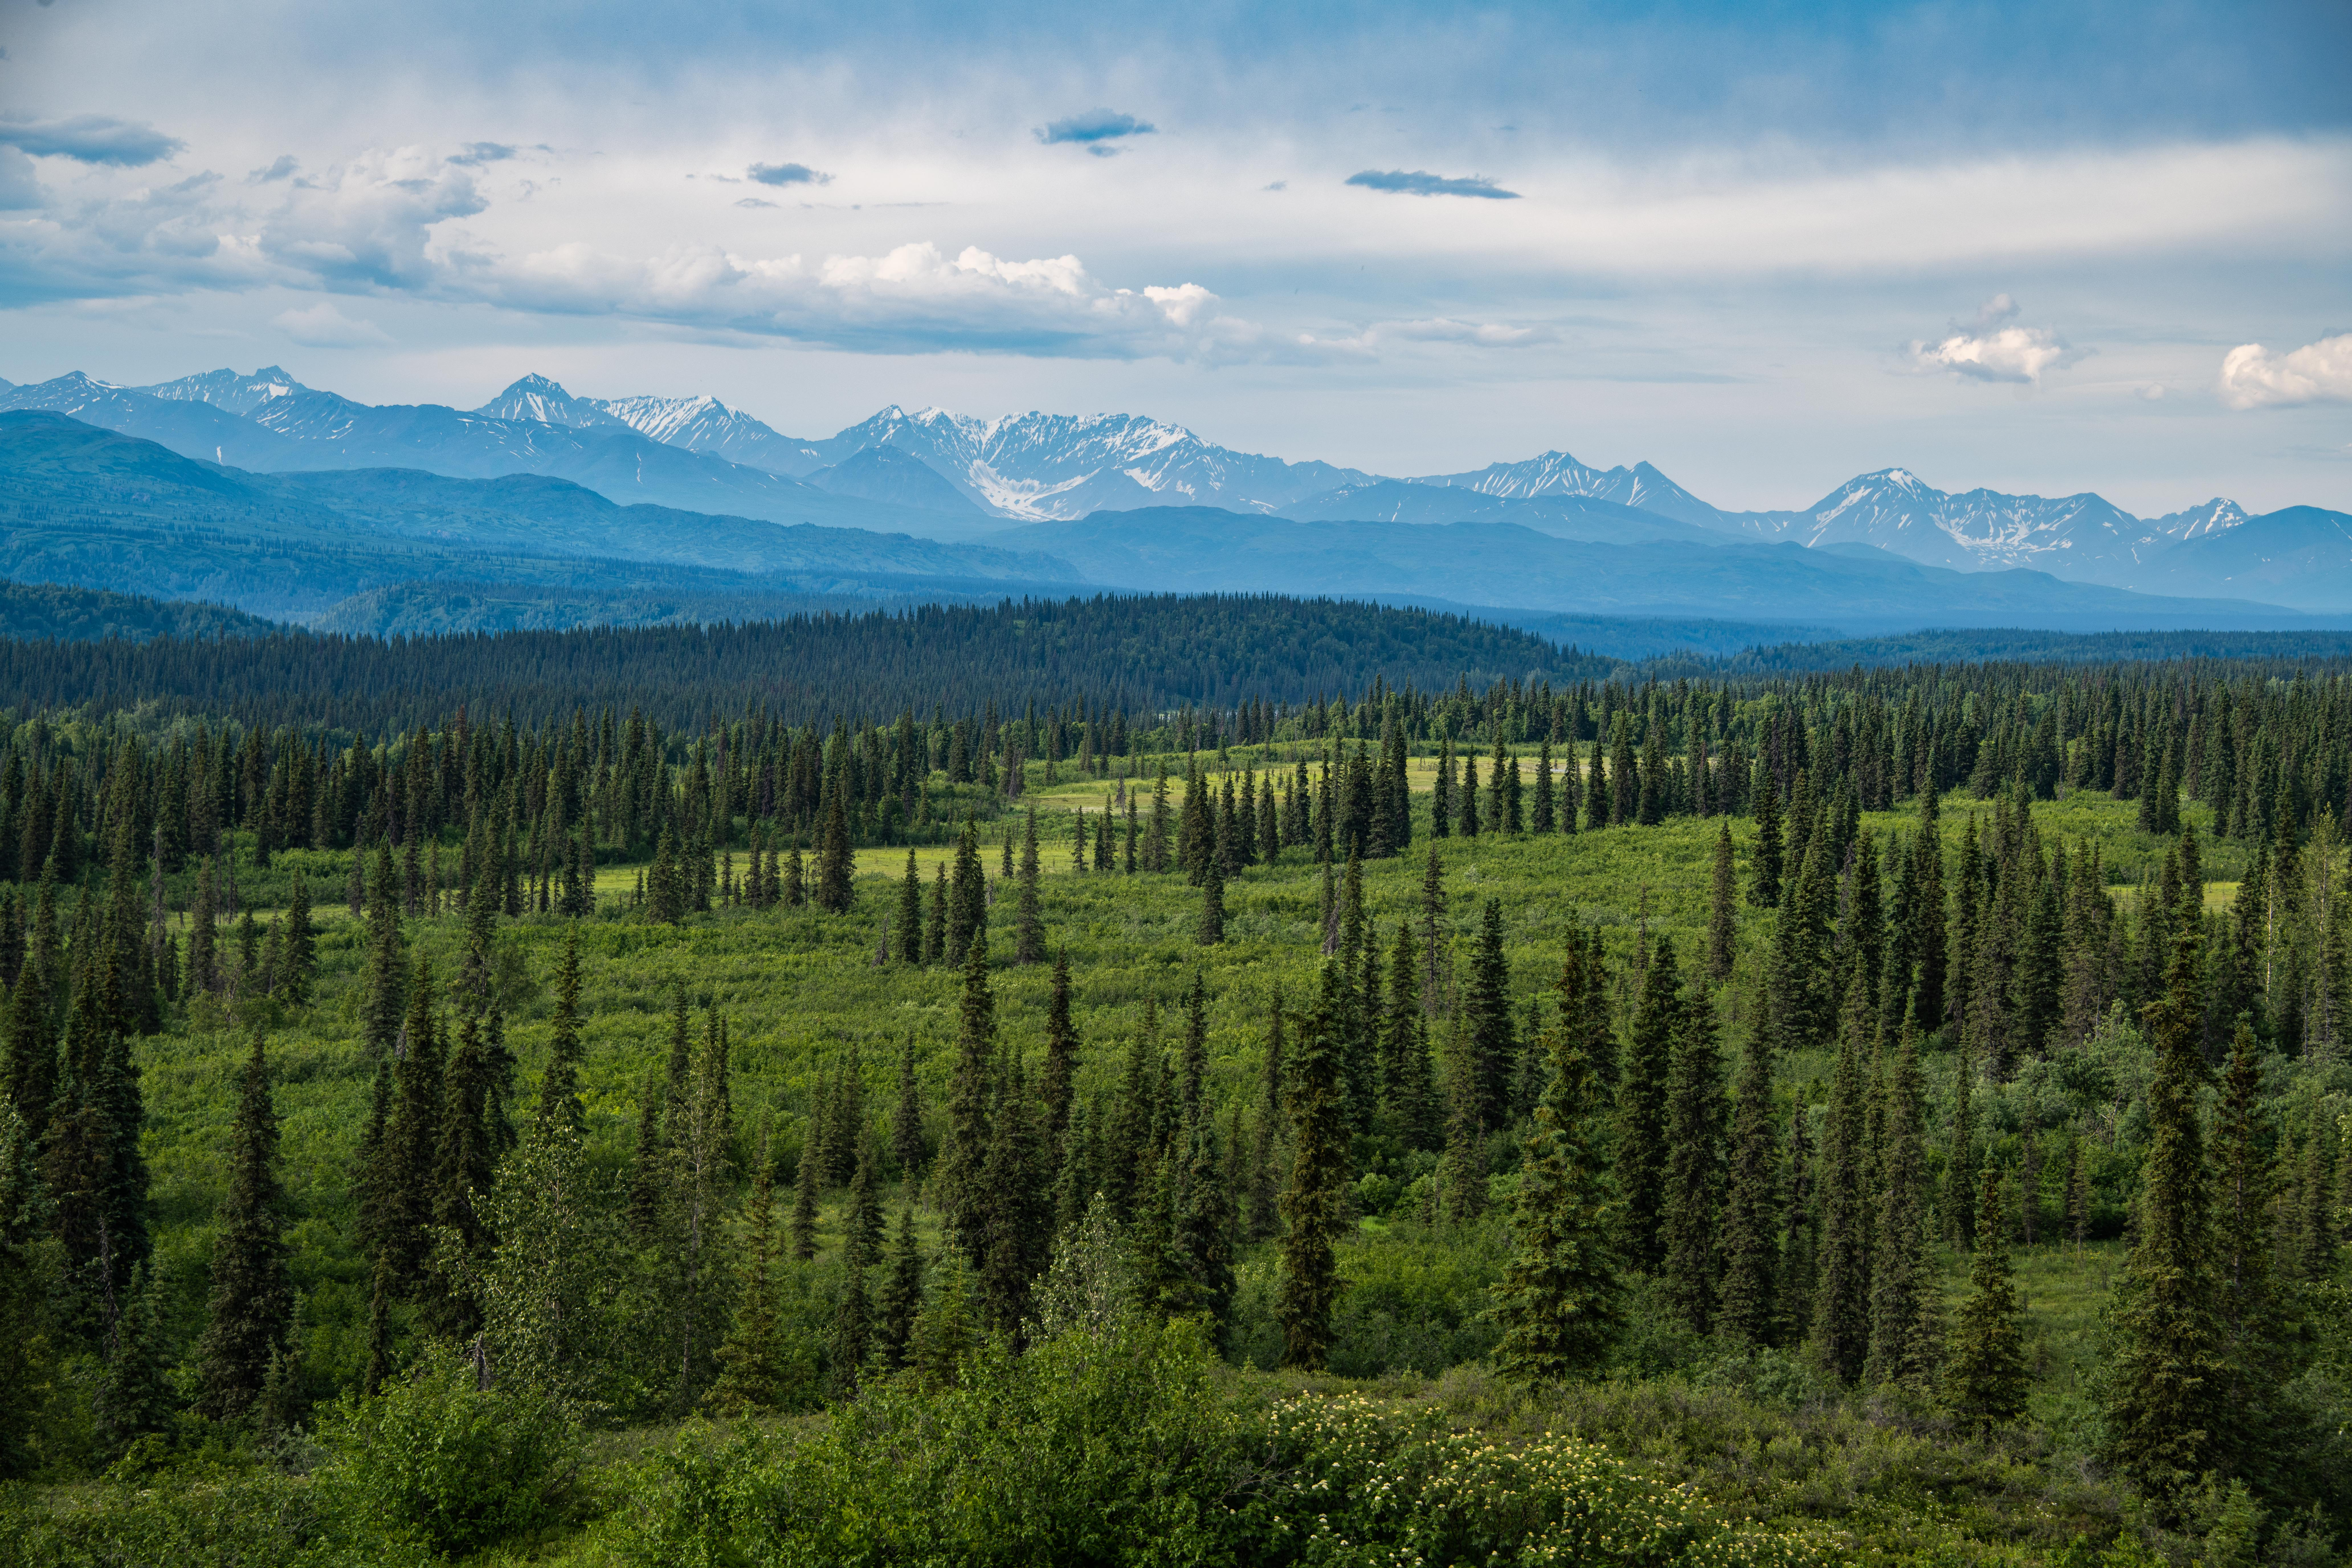 Viewpoint on the way of roadtrip to Denali Natiaonal Park by Travel Anubhav